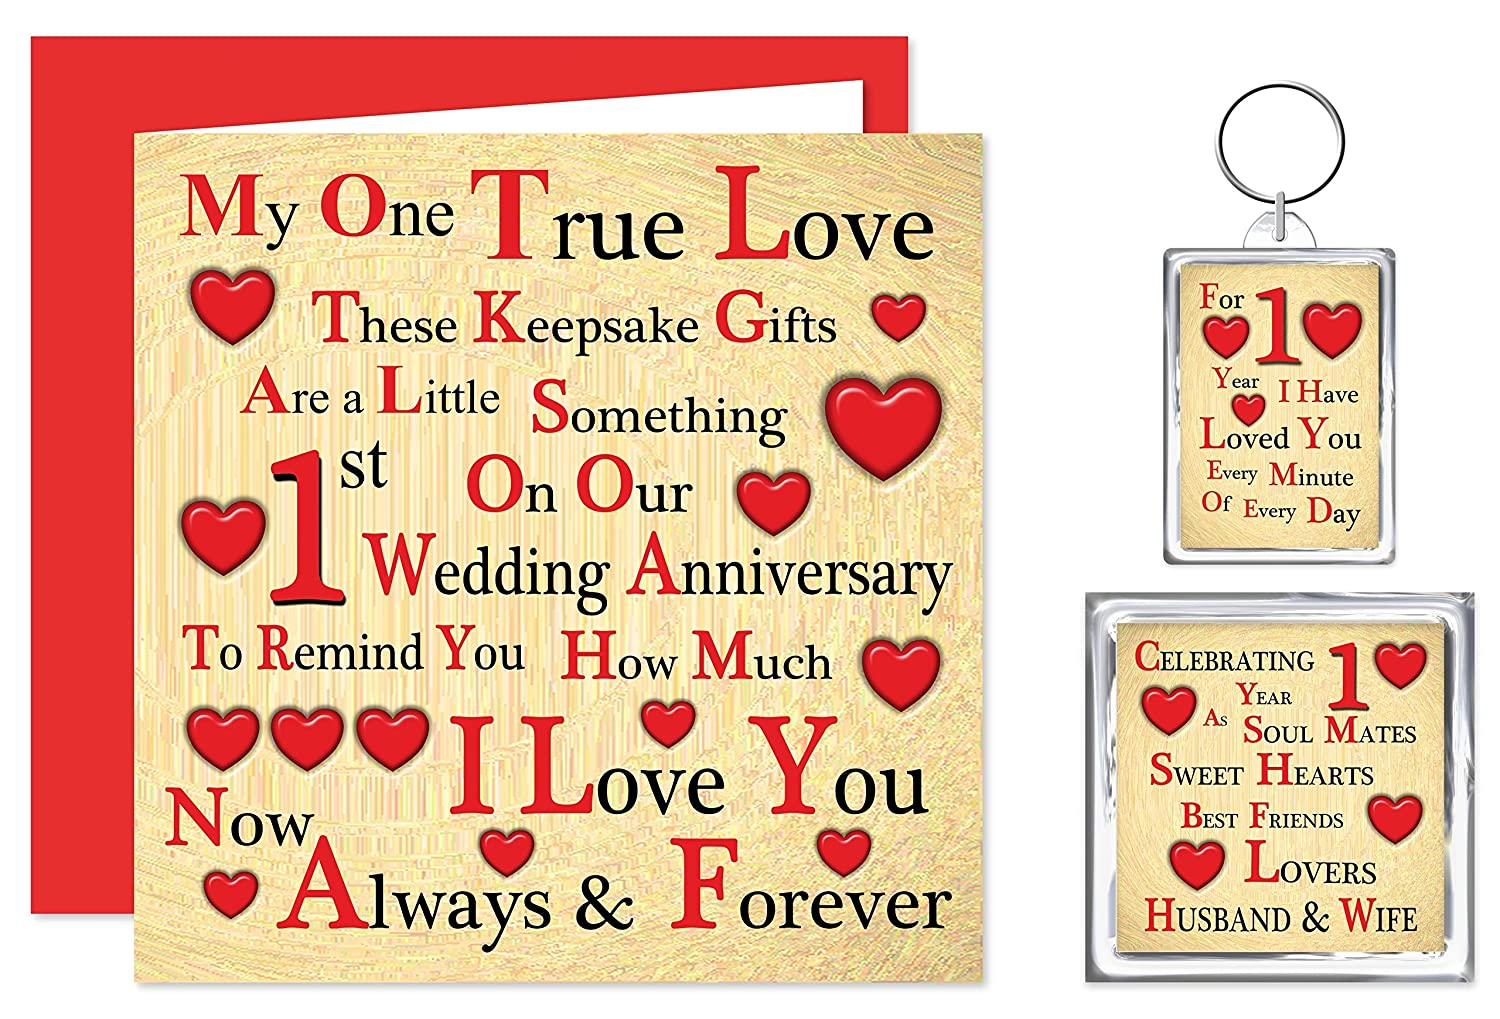 Gift For 13th Wedding Anniversary: Best Tips On 1st Anniversary Gift Ideas